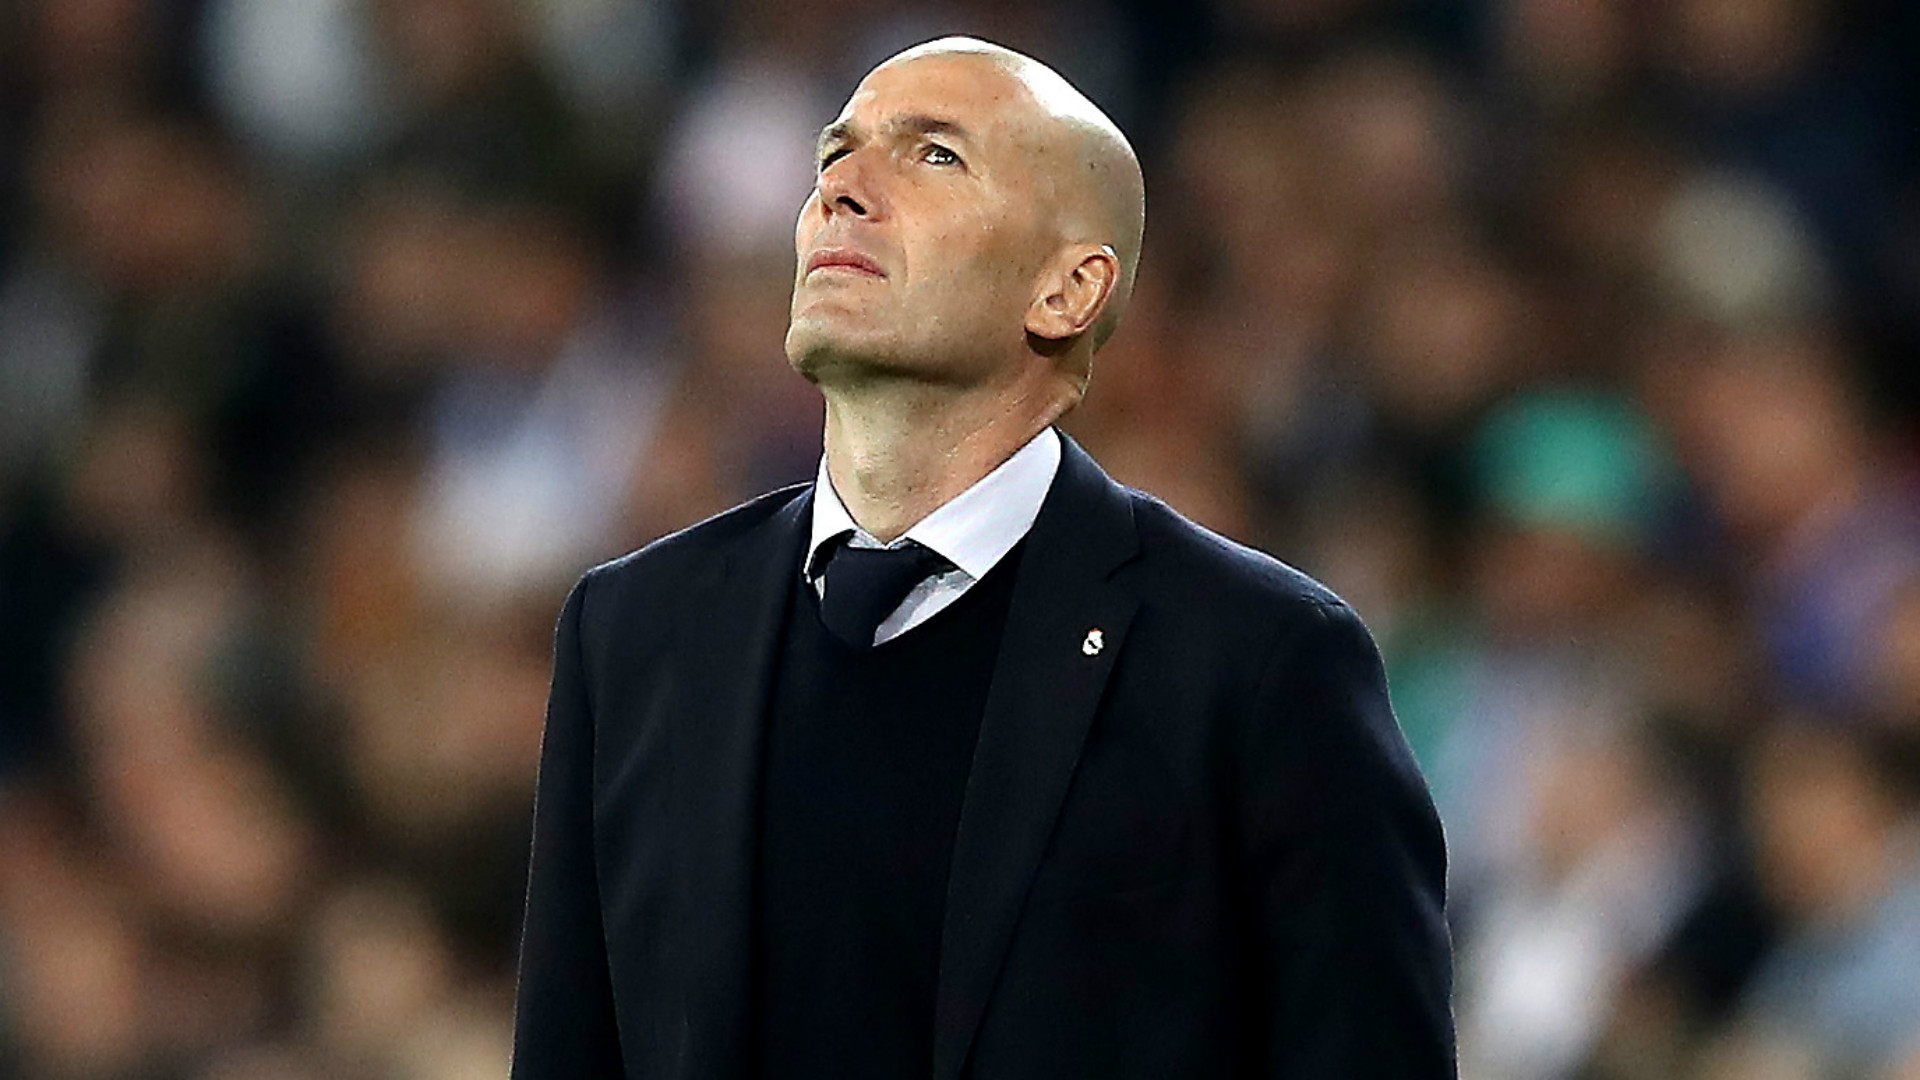 'Magnificent' Zidane has earned right to remain at Real Madrid, says Casillas